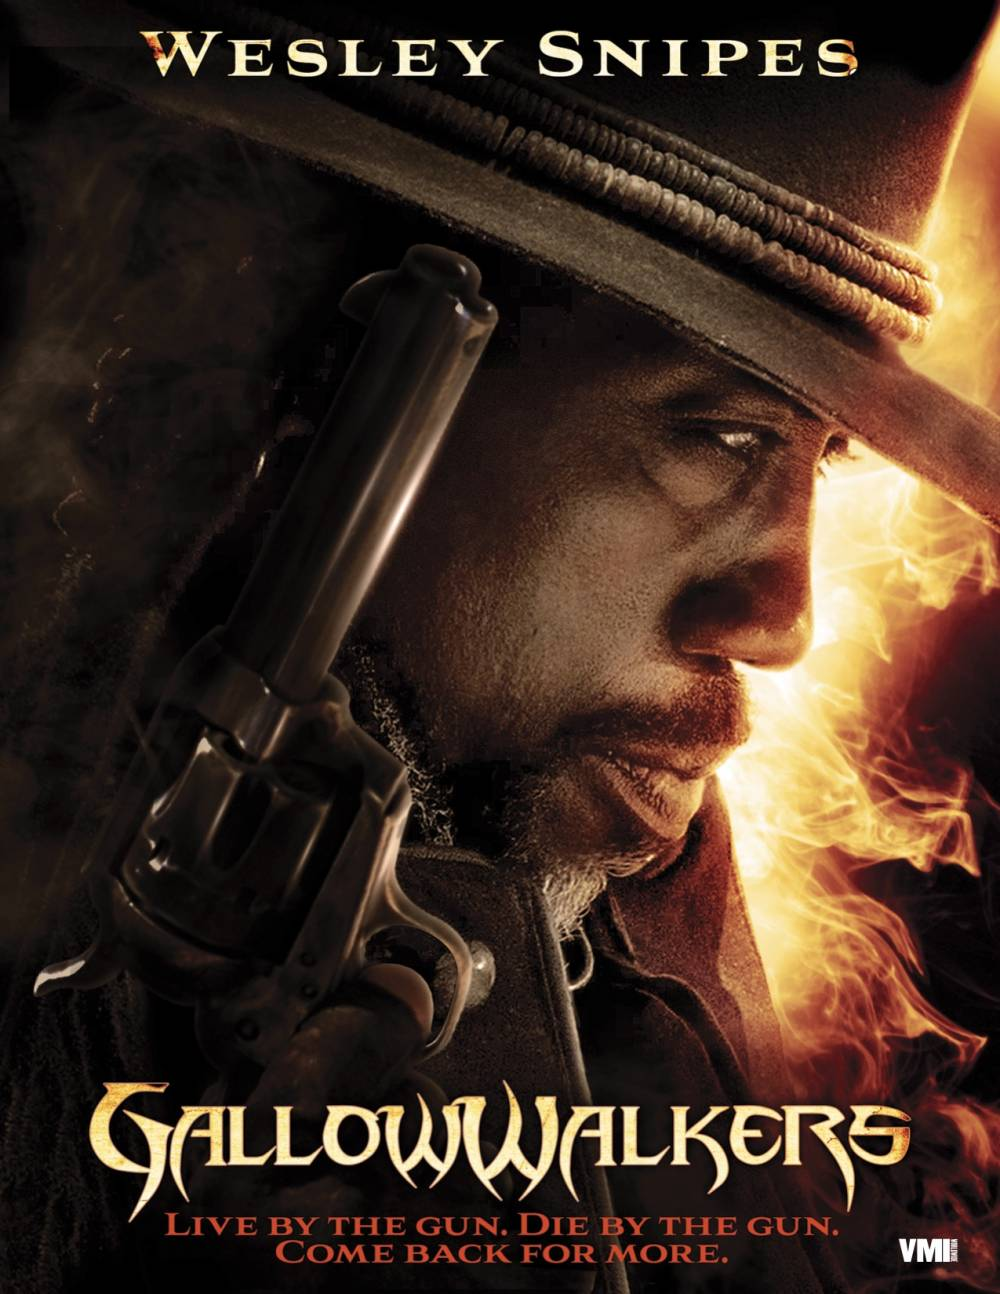 Gallowwalkers-2013-Movie-Poster.jpg